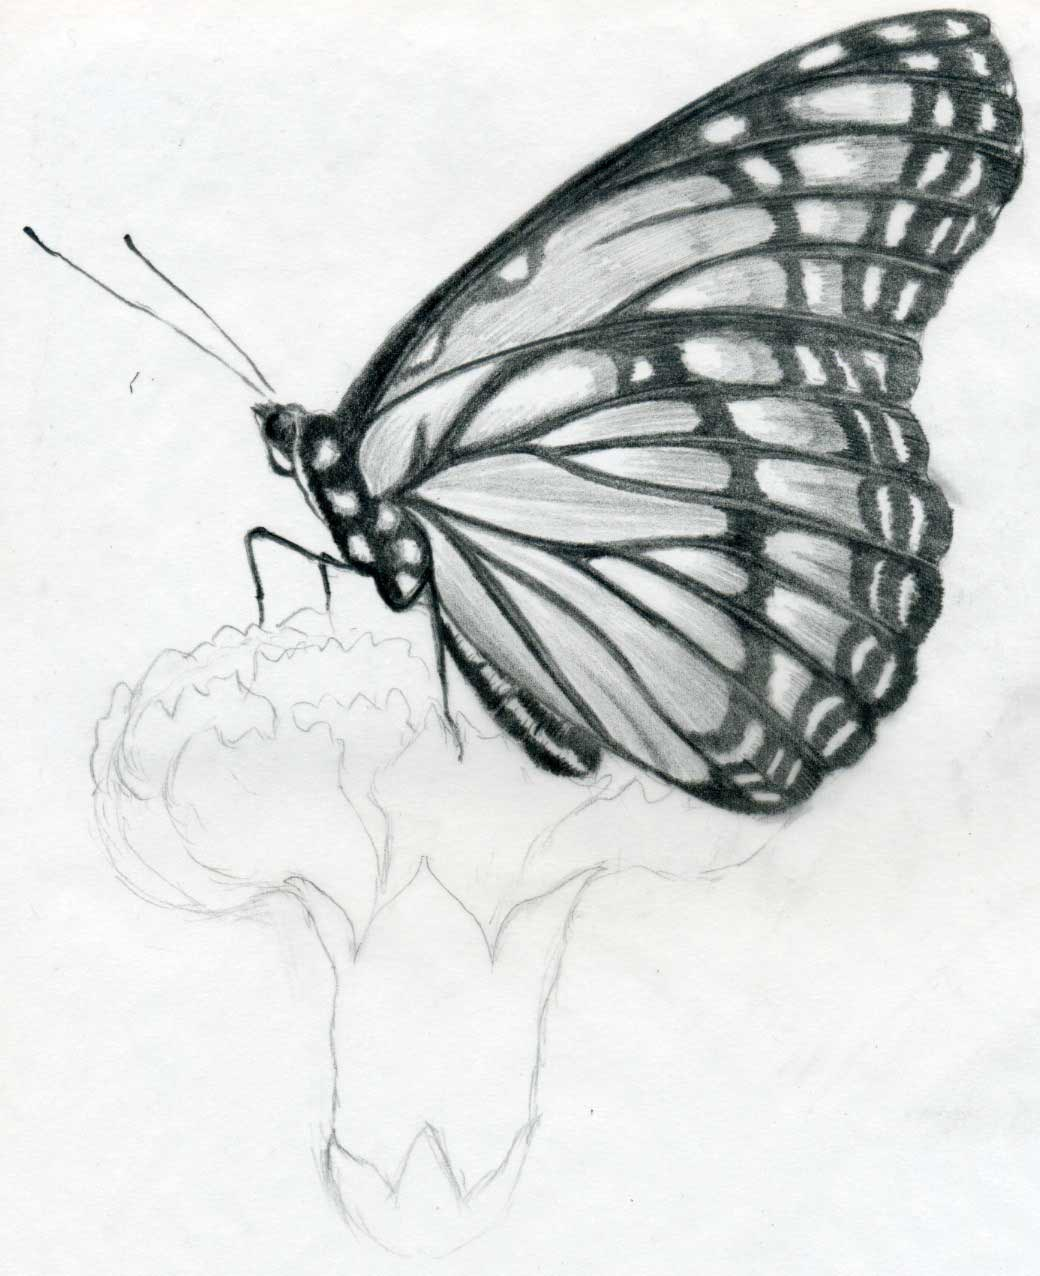 Butterfly pencil drawings you can practice